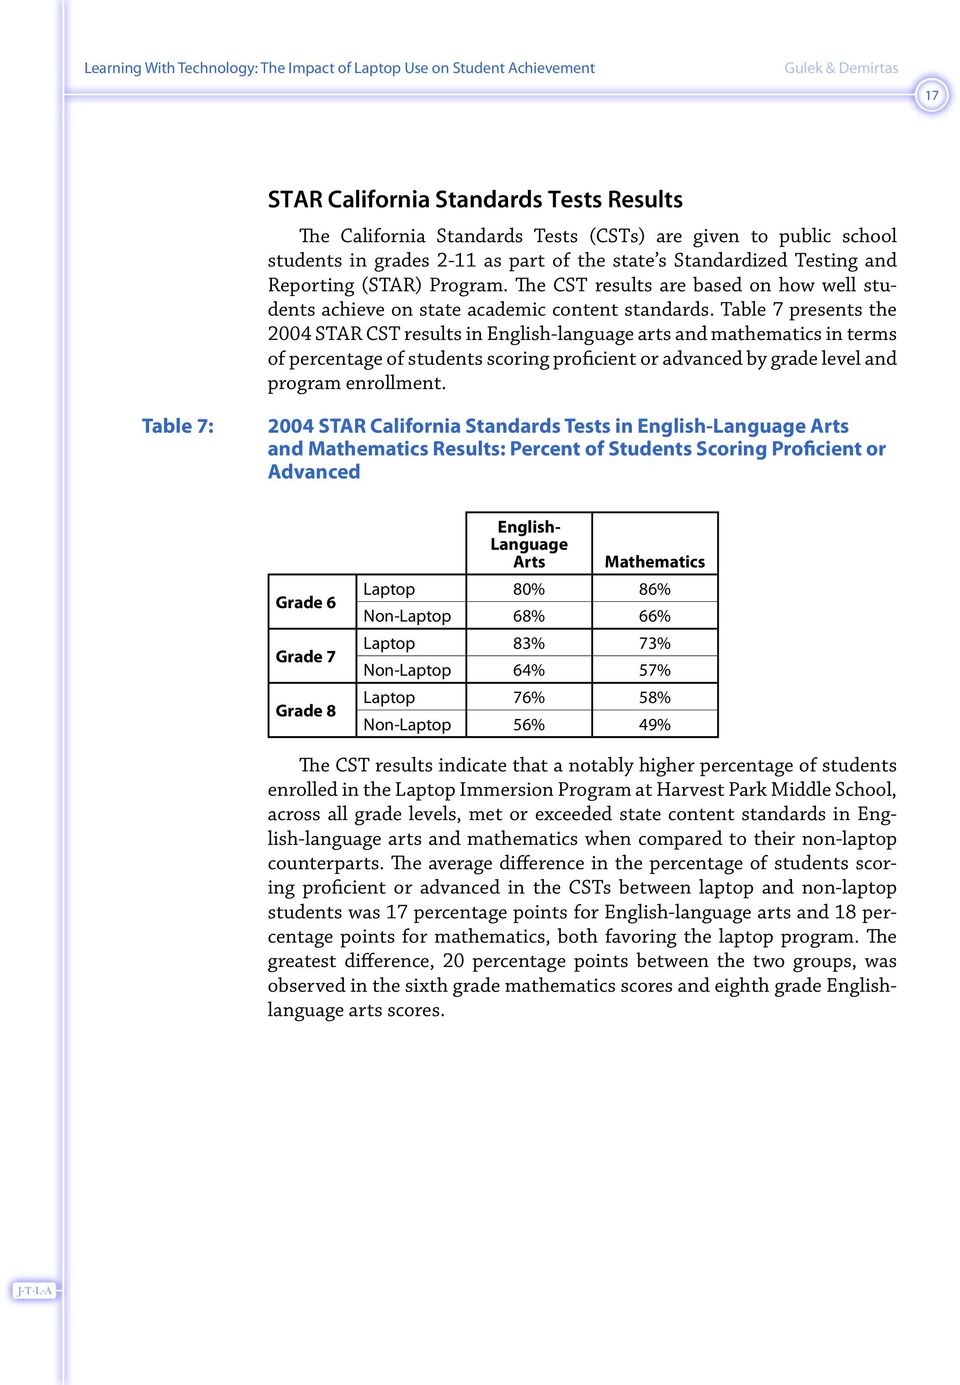 Table 7 presents the 2004 STAR CST results in English-language arts and mathematics in terms of percentage of students scoring proficient or advanced by grade level and program enrollment.